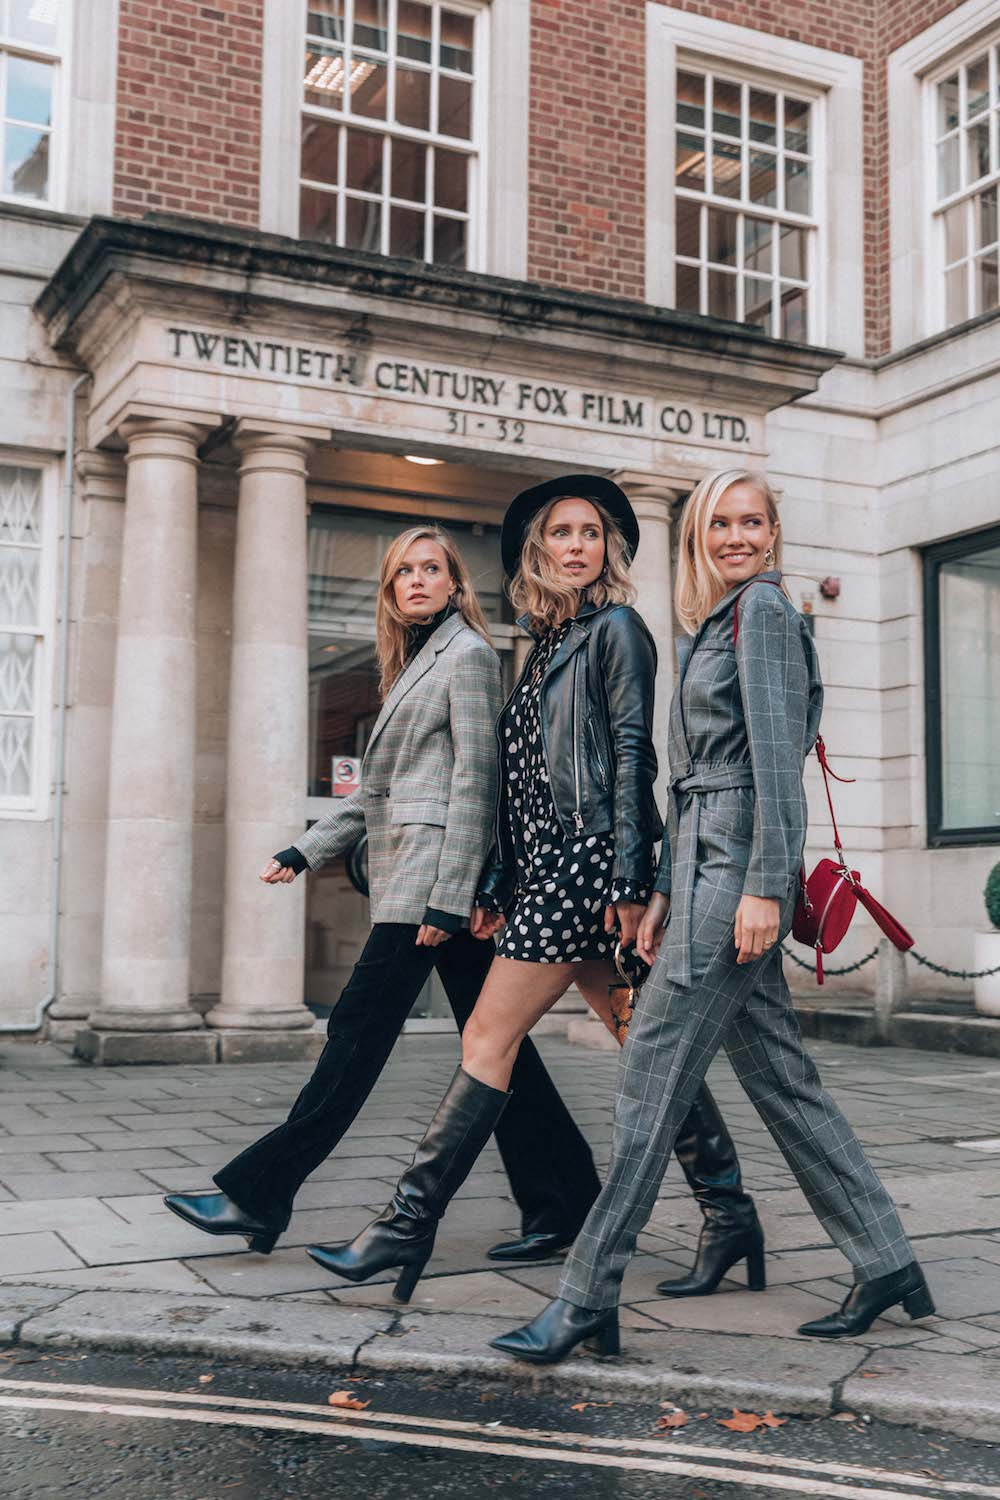 THE 4 OF US - Autumn street style by Lydia Collins